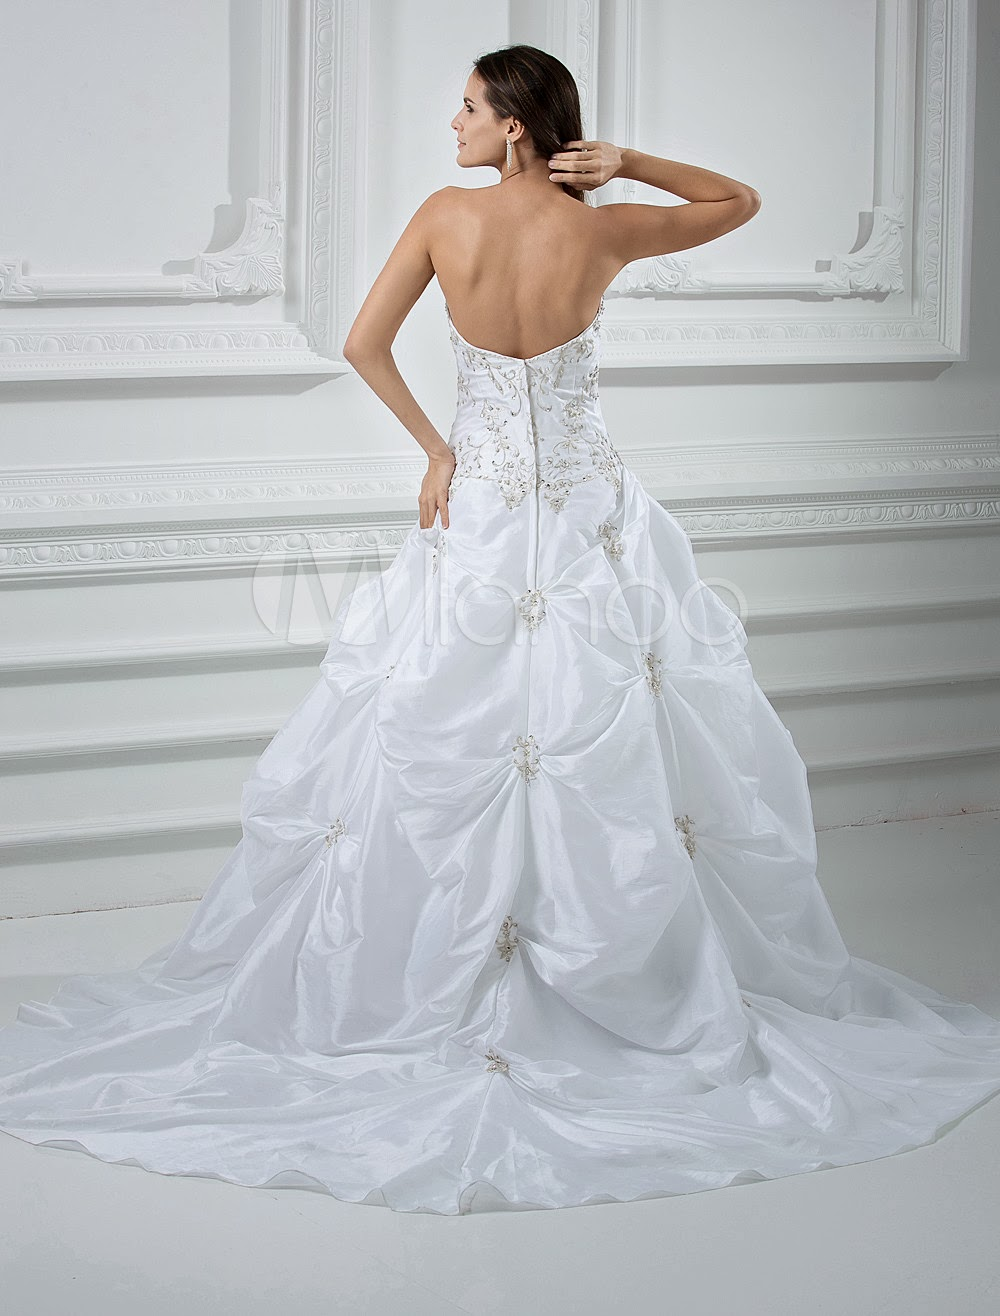 China Wholesale Dresses - Elegant White Ball Gown Strapless Taffeta Pongee Beading Embroidery Wedding Dress